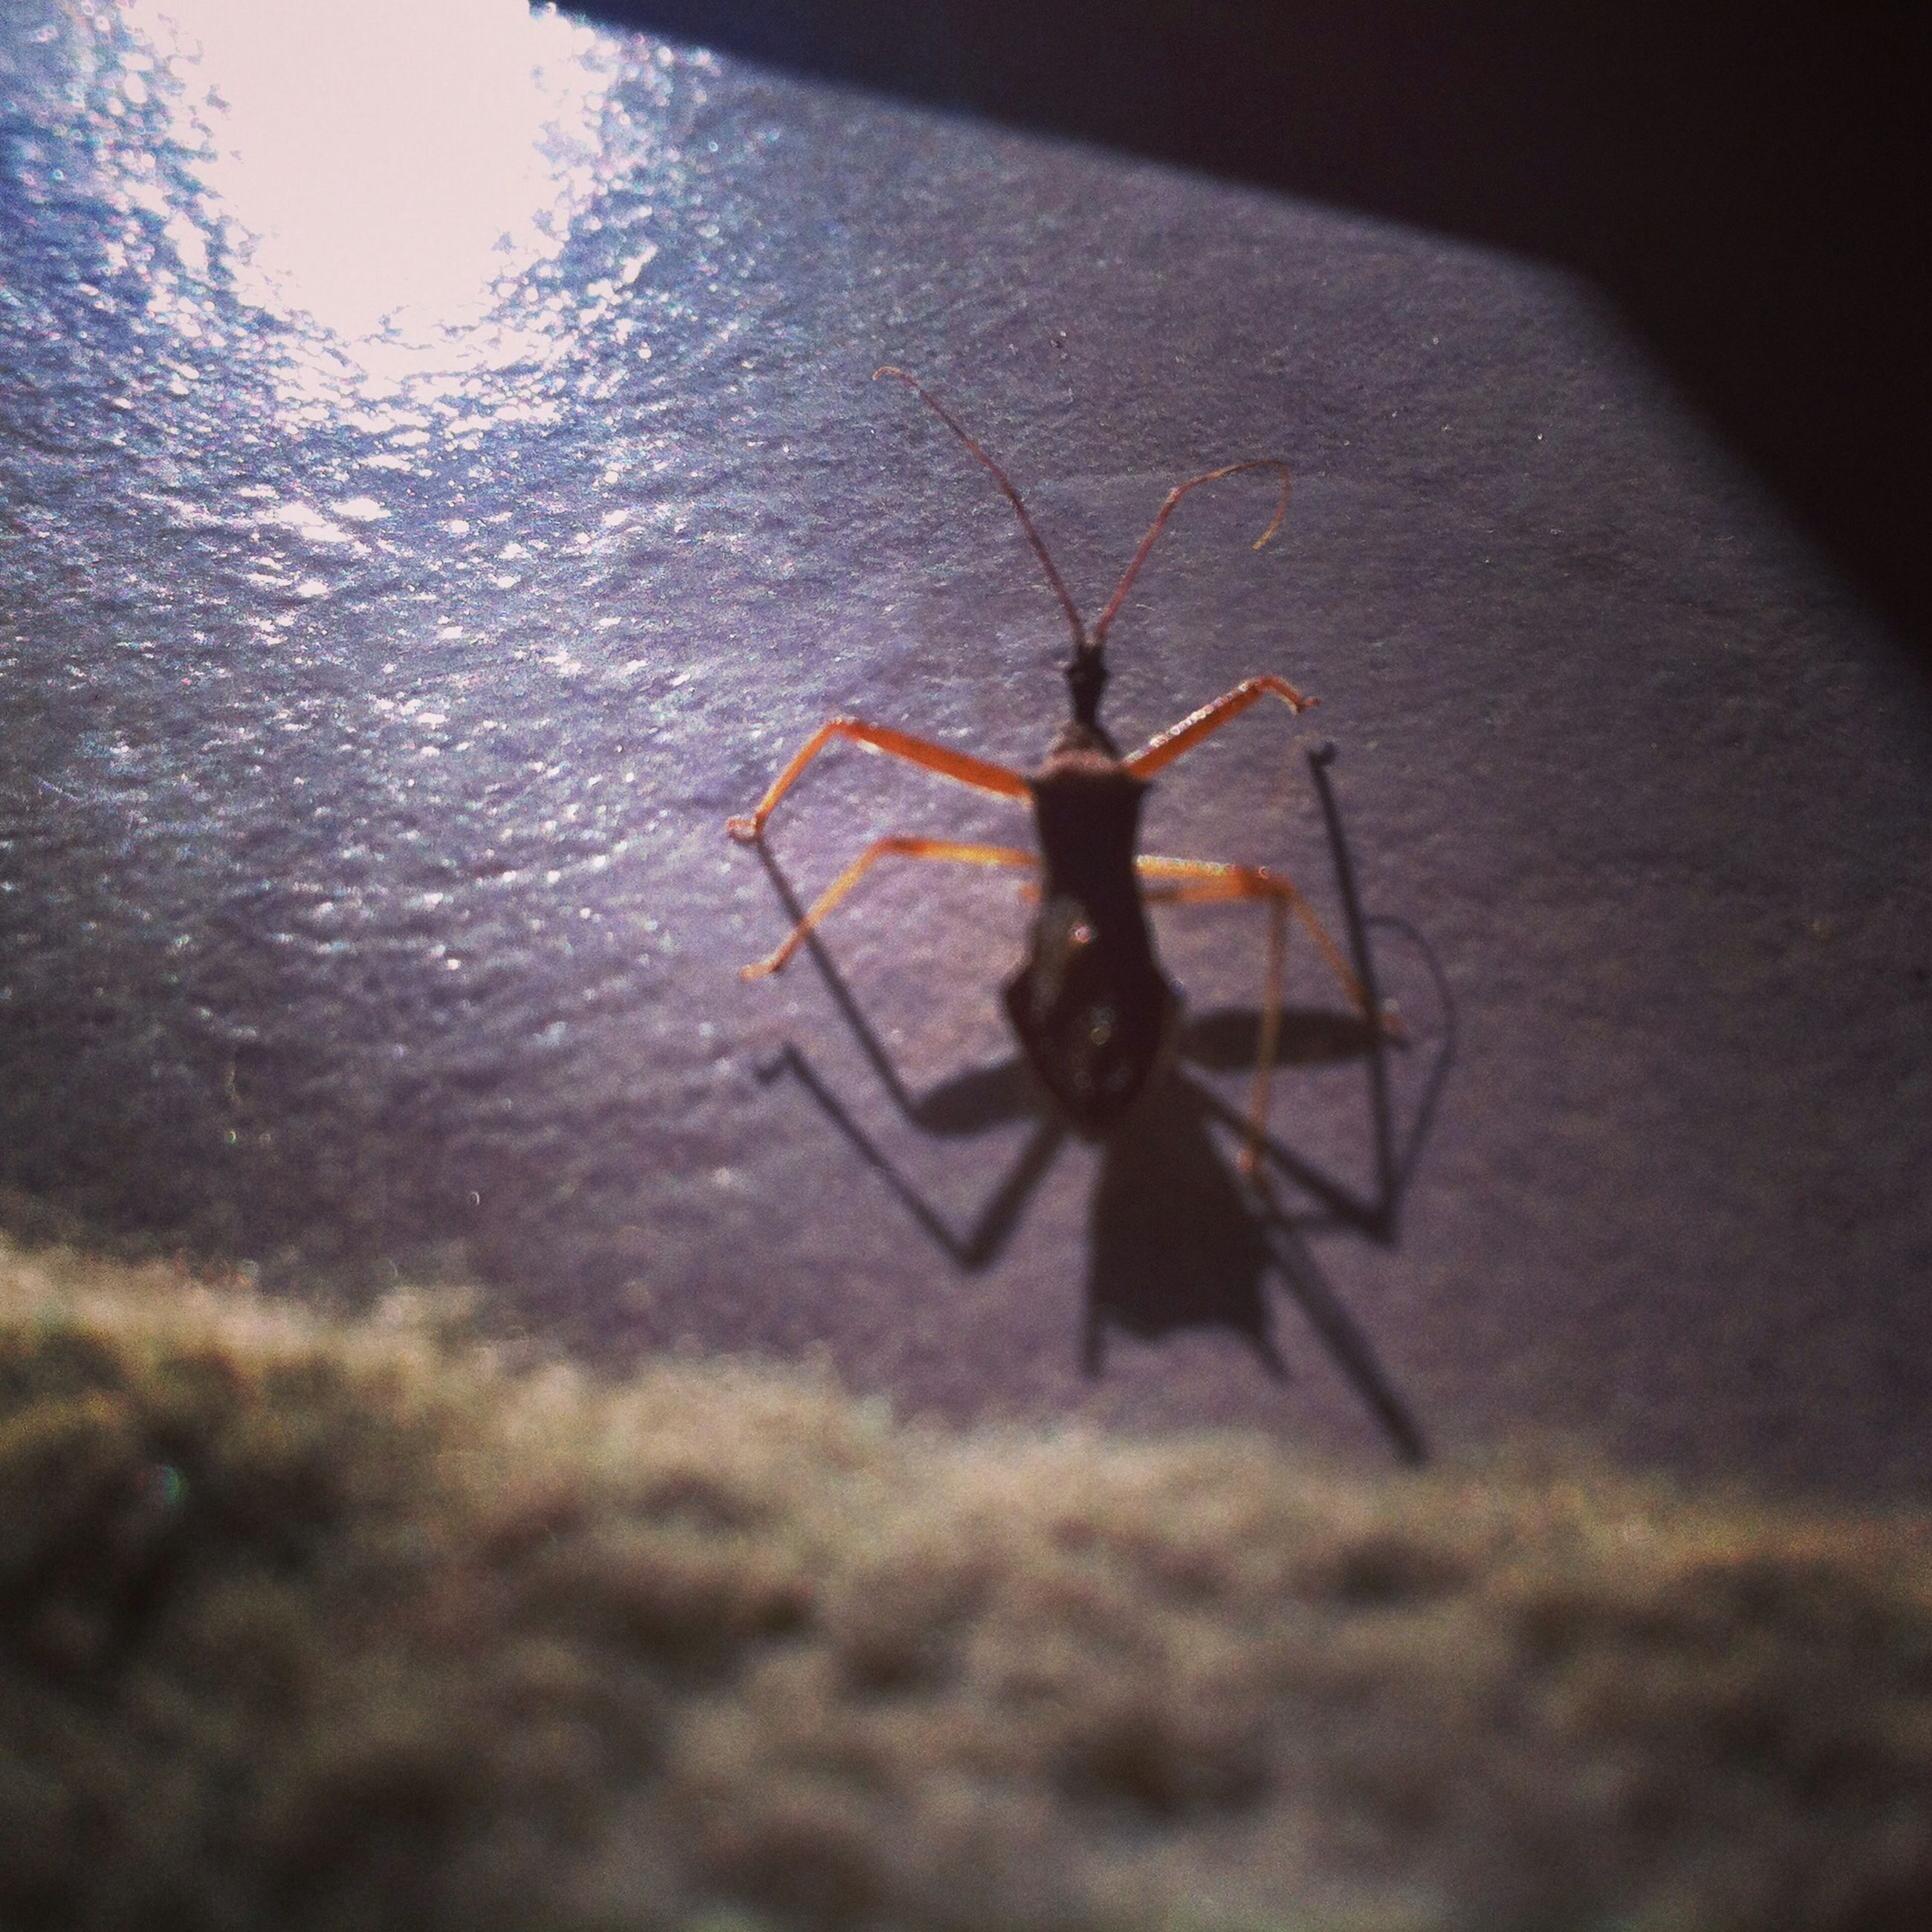 insect, one animal, animal themes, indoors, spider, animals in the wild, wildlife, close-up, spider web, selective focus, no people, full length, high angle view, wall - building feature, day, nature, window, focus on foreground, glass - material